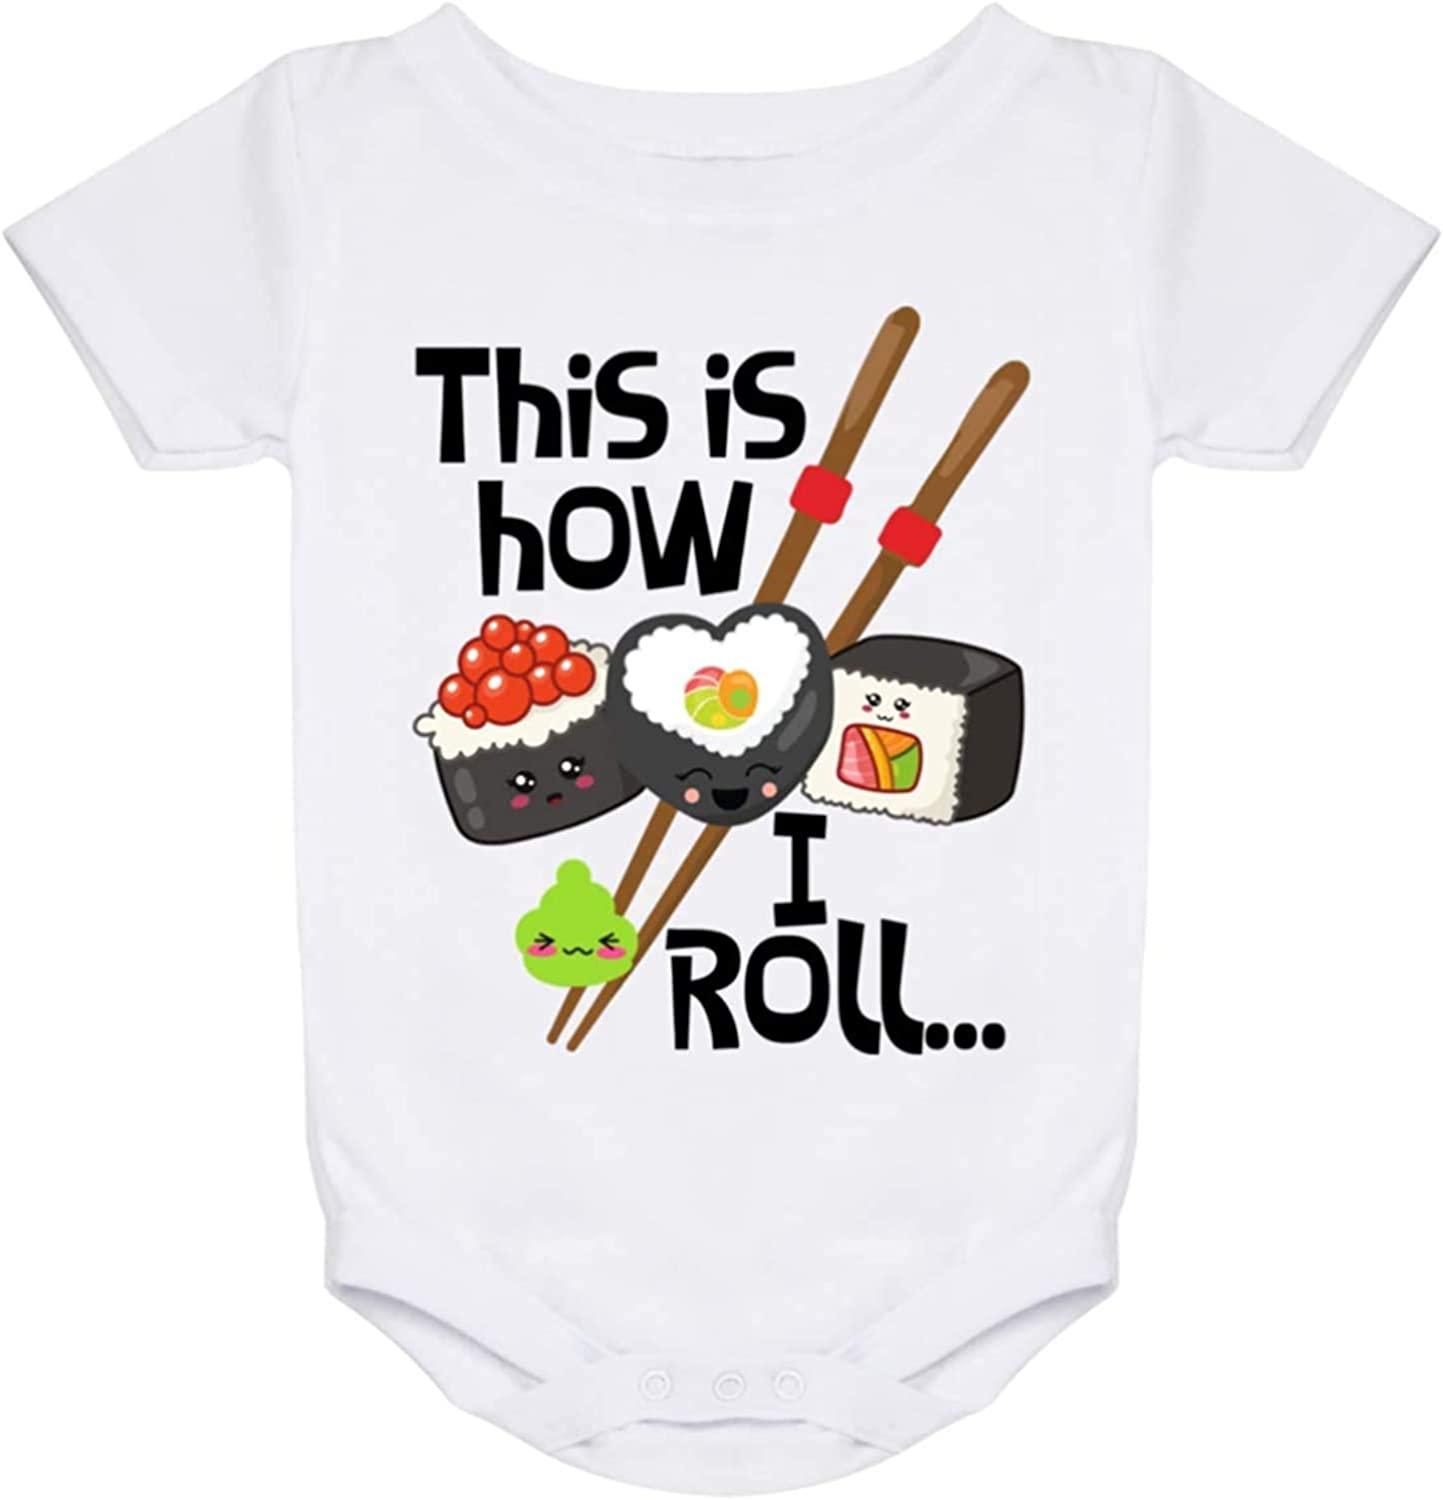 BYRON HOYLE This is How I Roll Baby Bodysuit,Sushi Lover Japanese Asian Food Baby Shirt Baby Romper